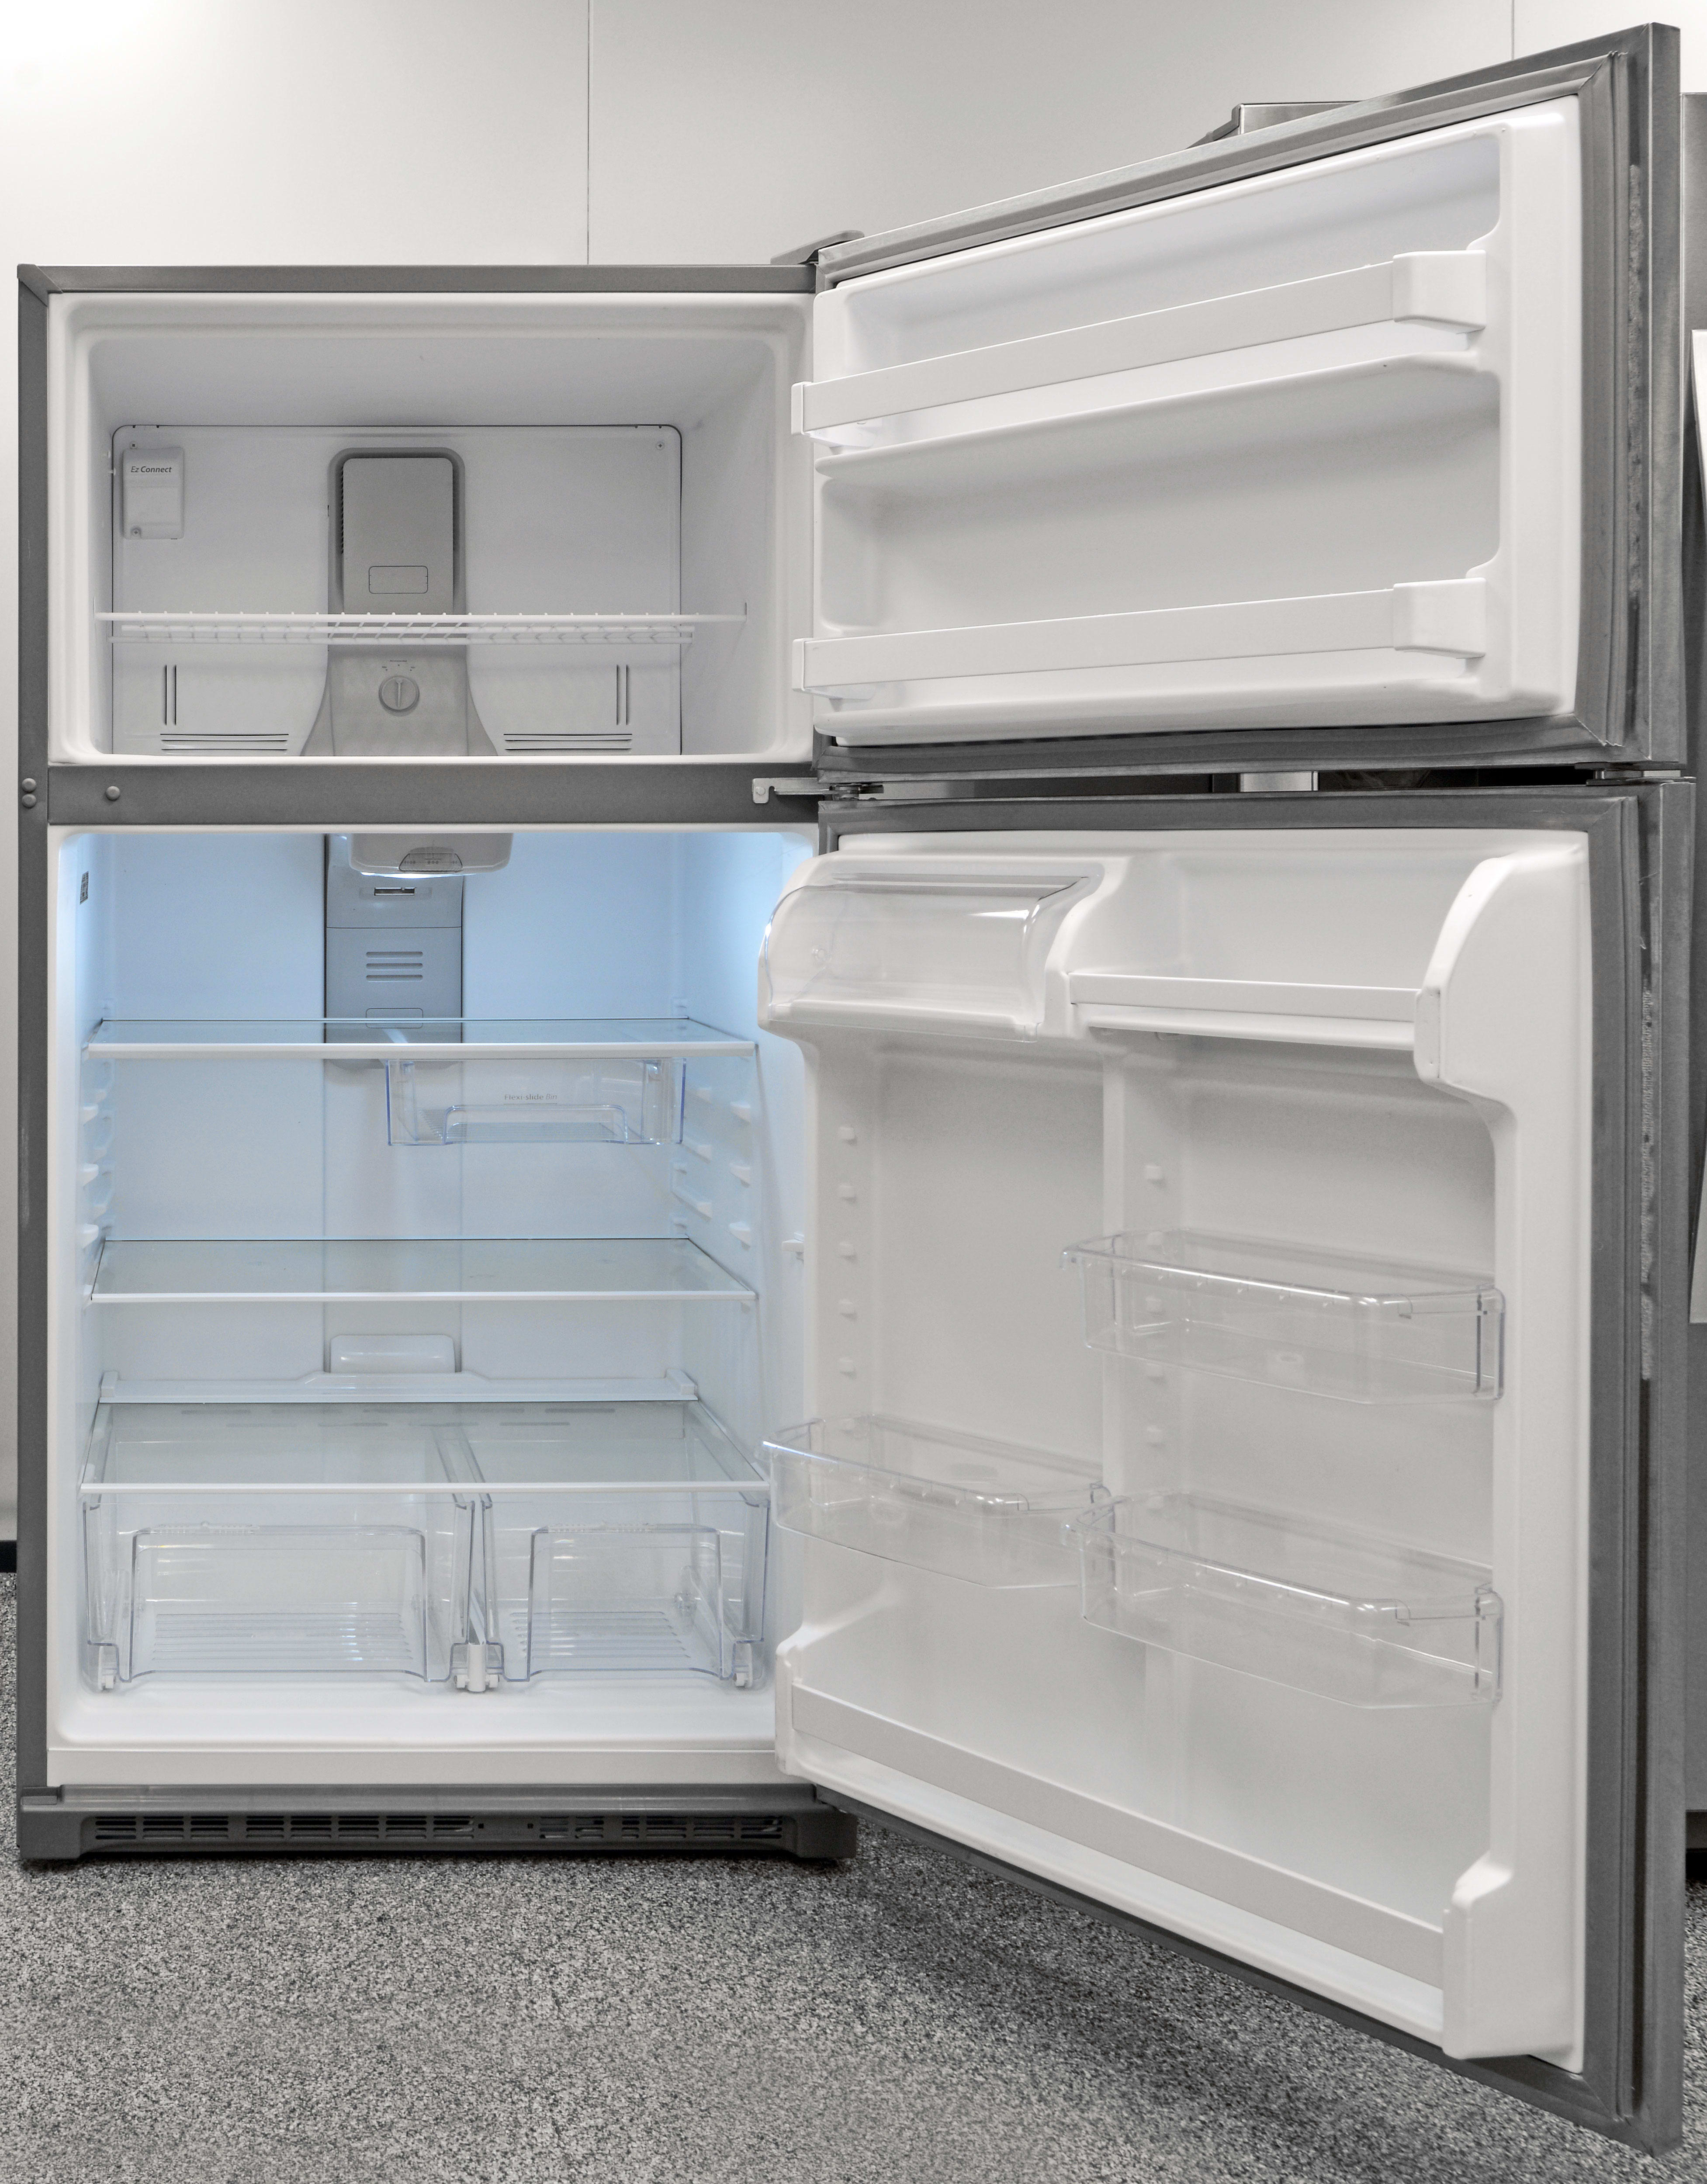 The Whirlpool WRT311FZDM's accessible, clean-looking interior is always a welcome sight in a fridge.